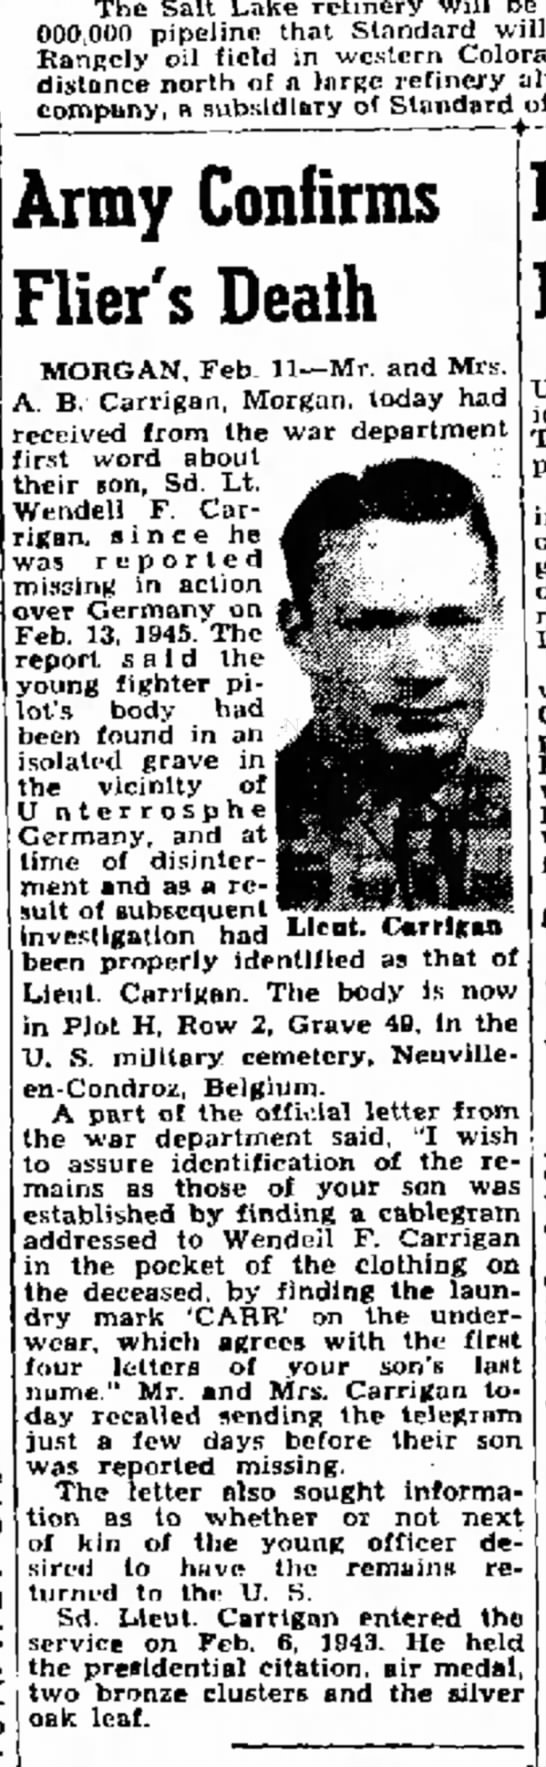 1948 Lt. Wendell Carrigan's death confirmed by Army -